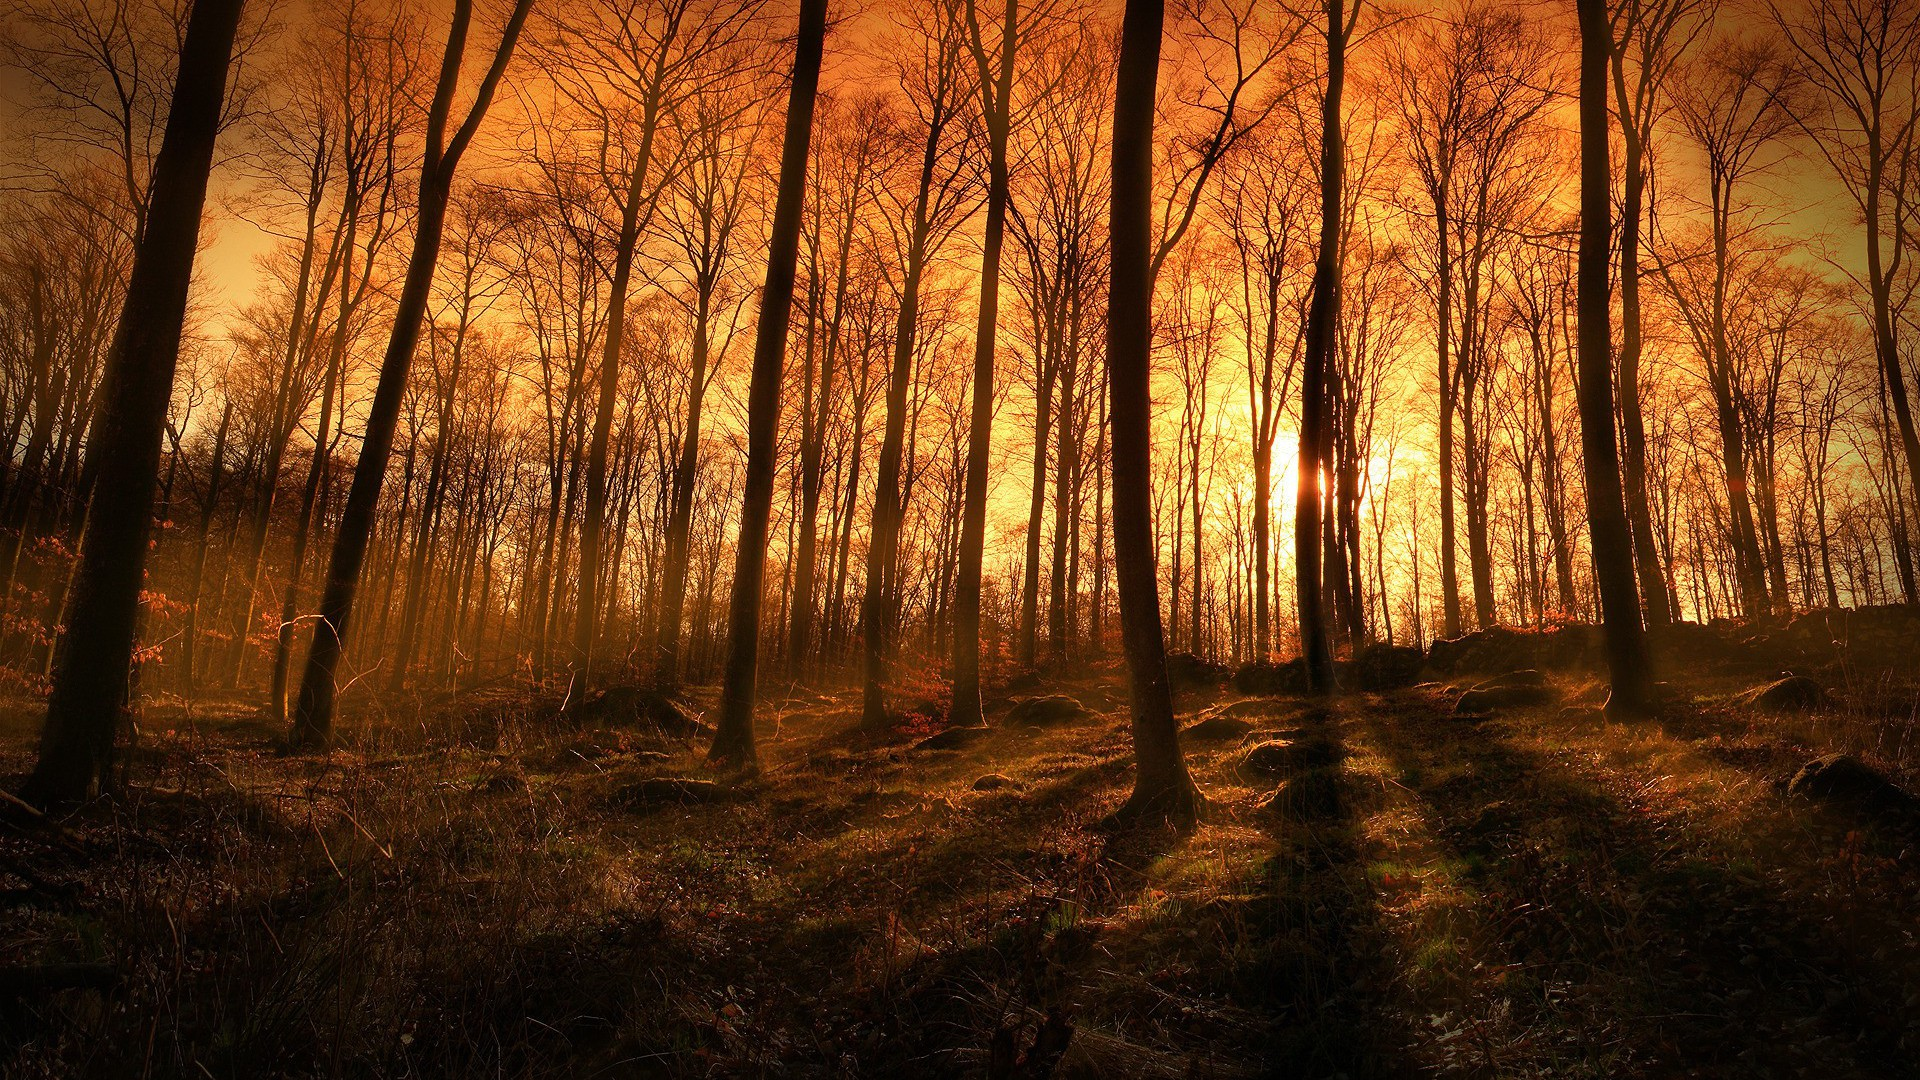 Free Fall Wallpaper For Ipad 2 Sunset Sunbeams Coming Through The Forest Wallpaper